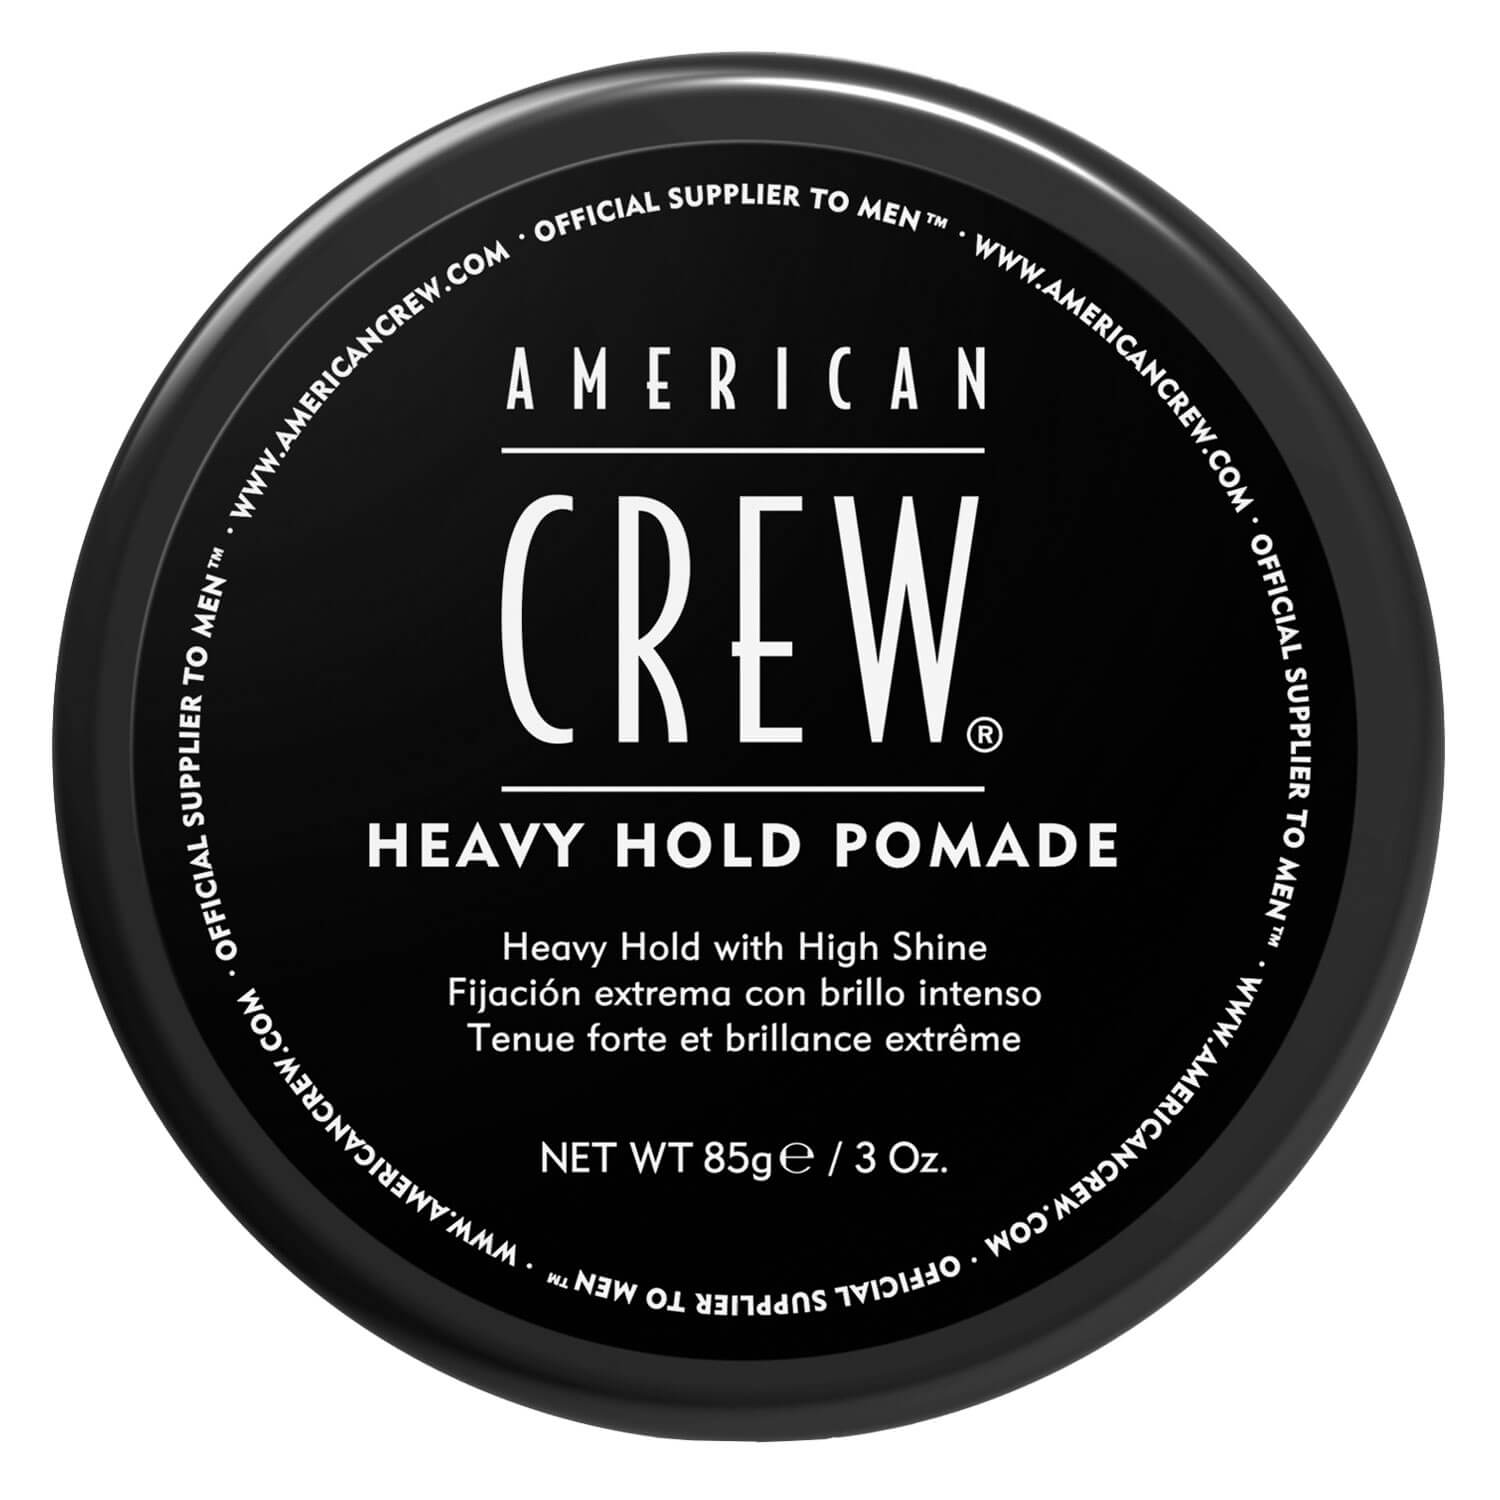 Style - Heavy Hold Pomade